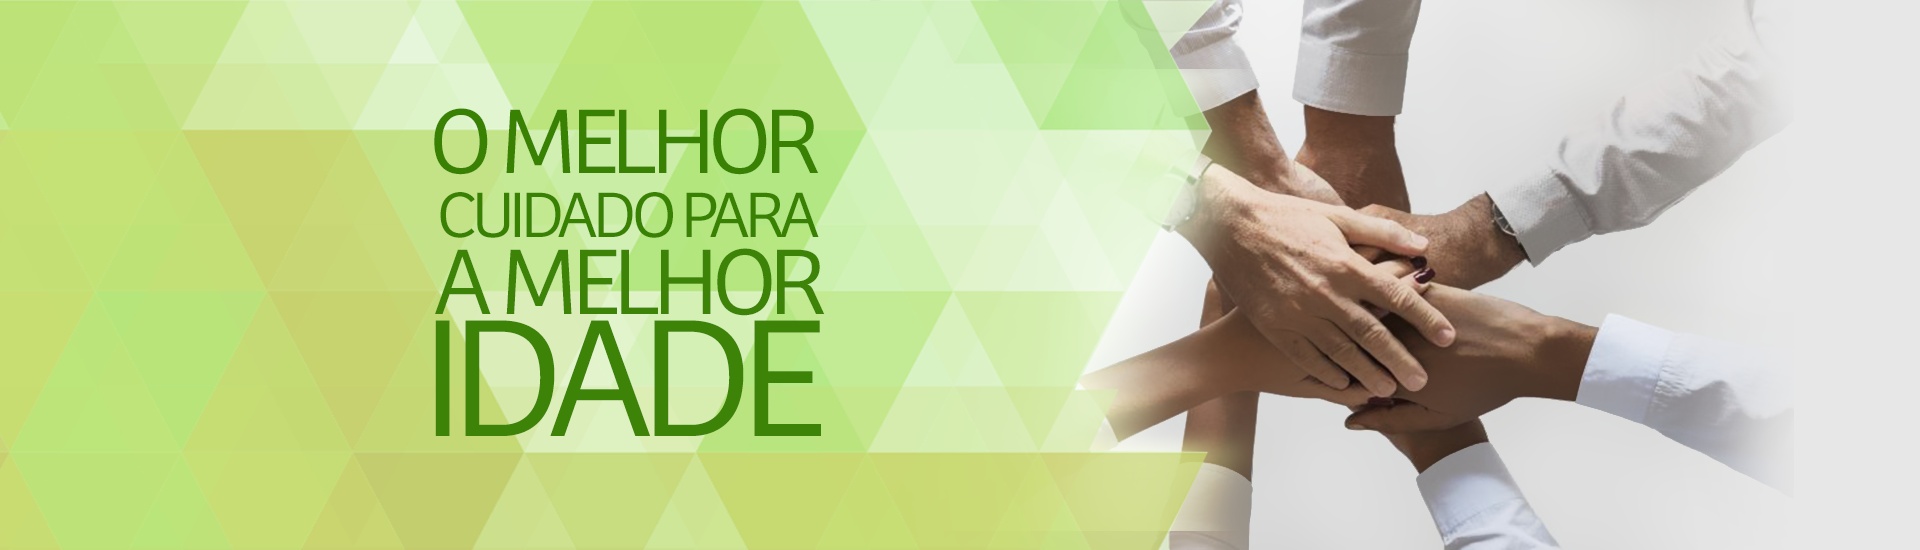 banner-apoio-day-clinic-1920x550A